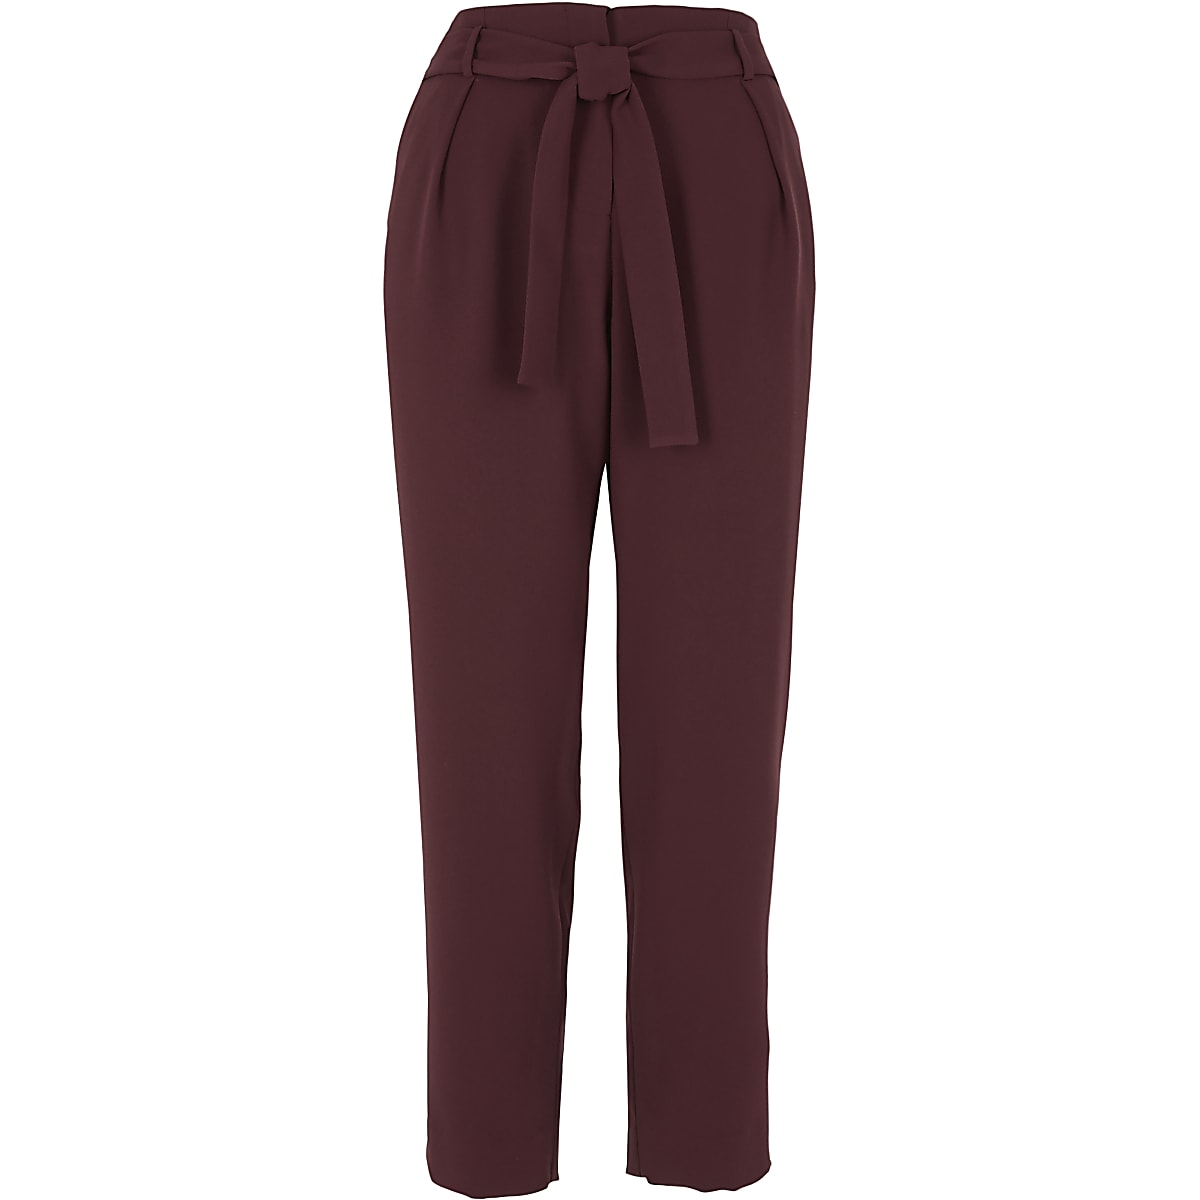 Burgundy tie waist tapered trousers